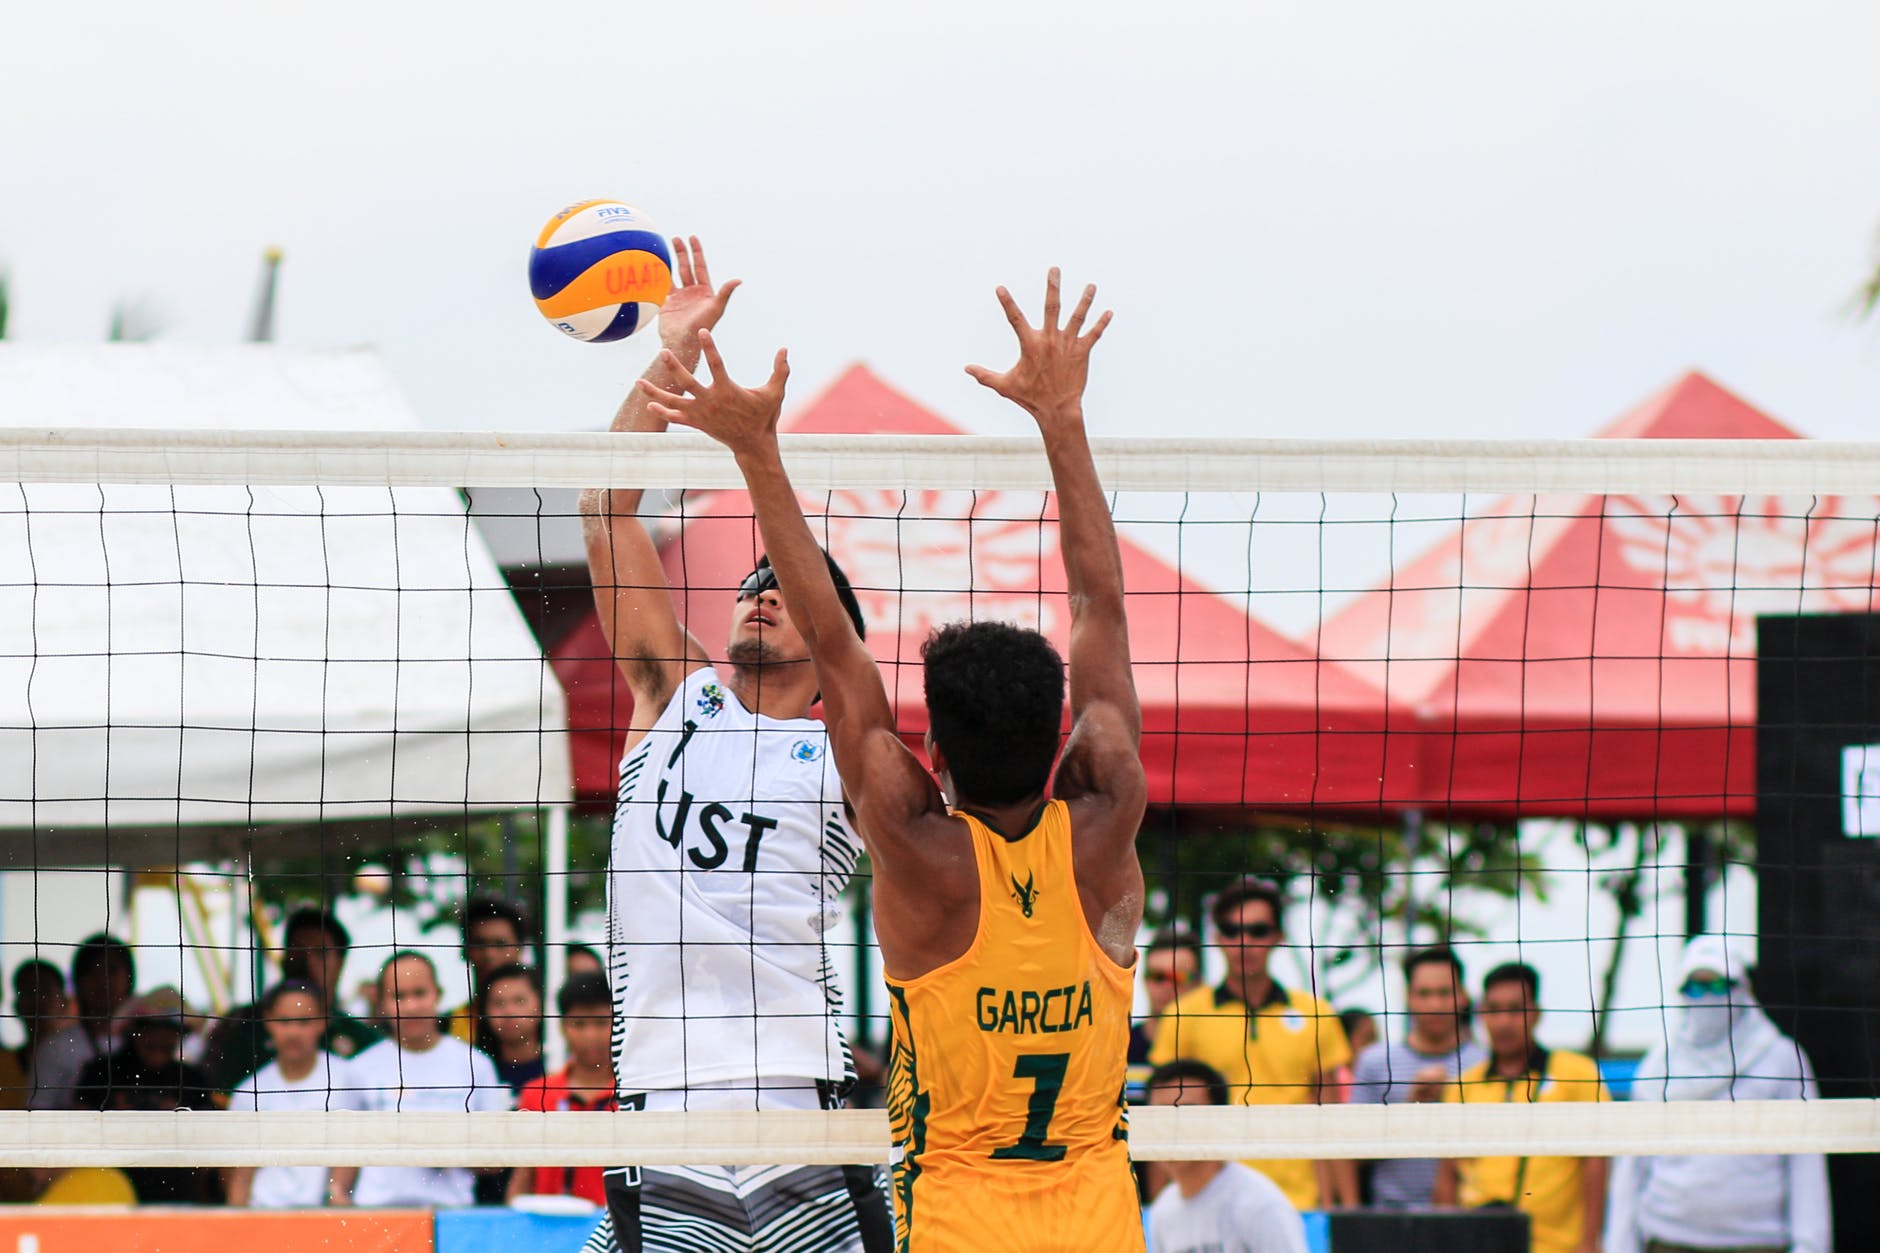 Volleyball Richlist: Top 10 Volleyball Players with The Highest Net Worth